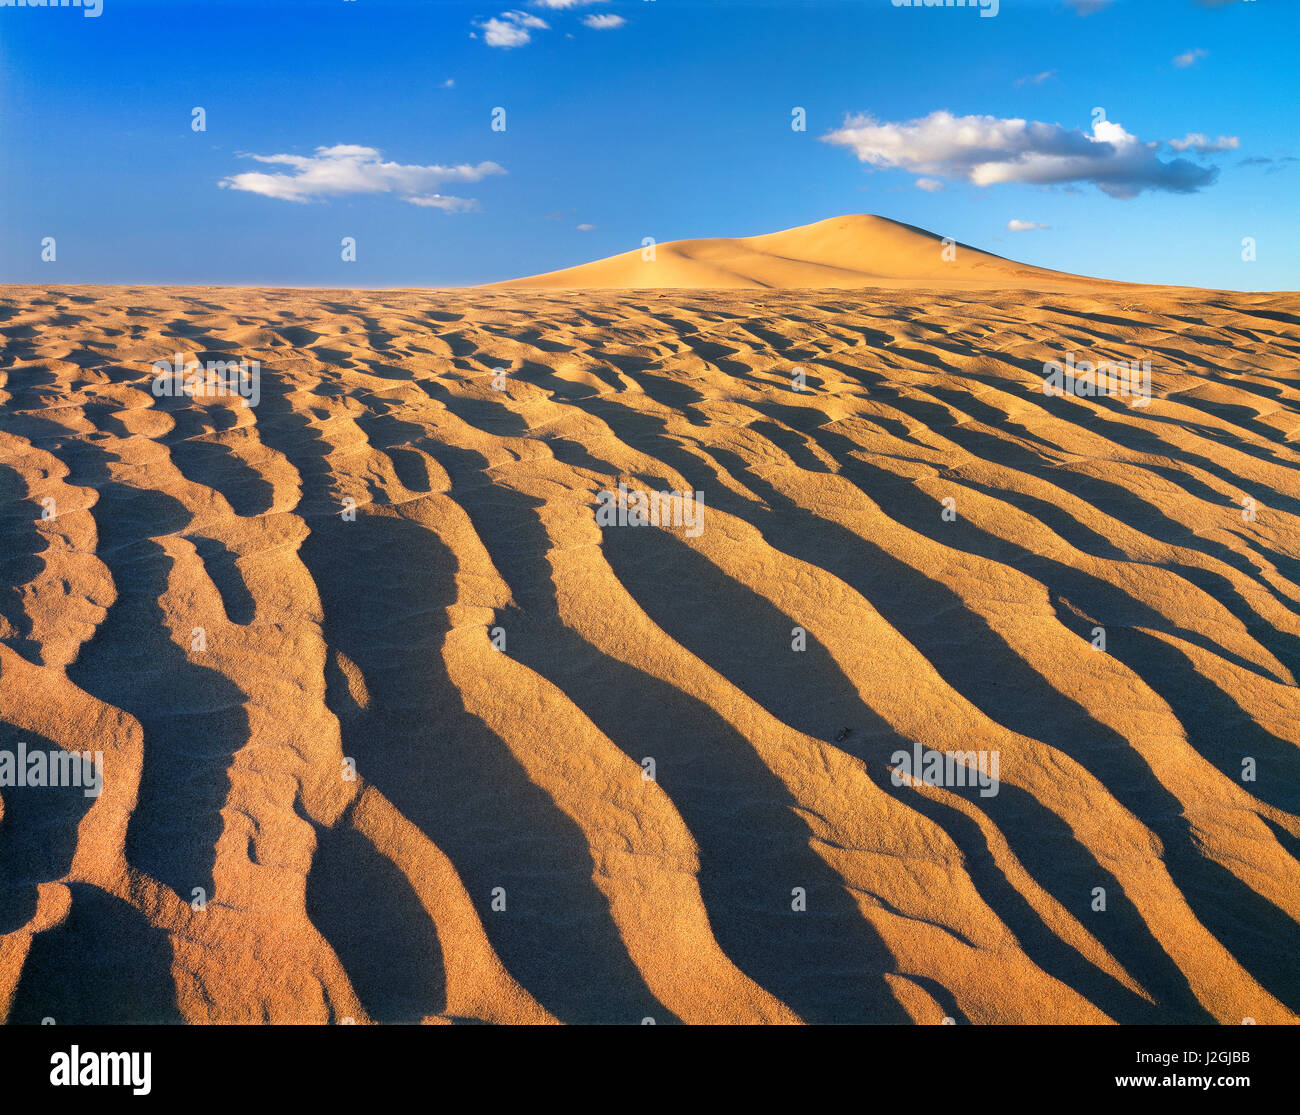 USA, California, Dumont Dunes, Patterns in the dunes. (Large format sizes available) - Stock Image